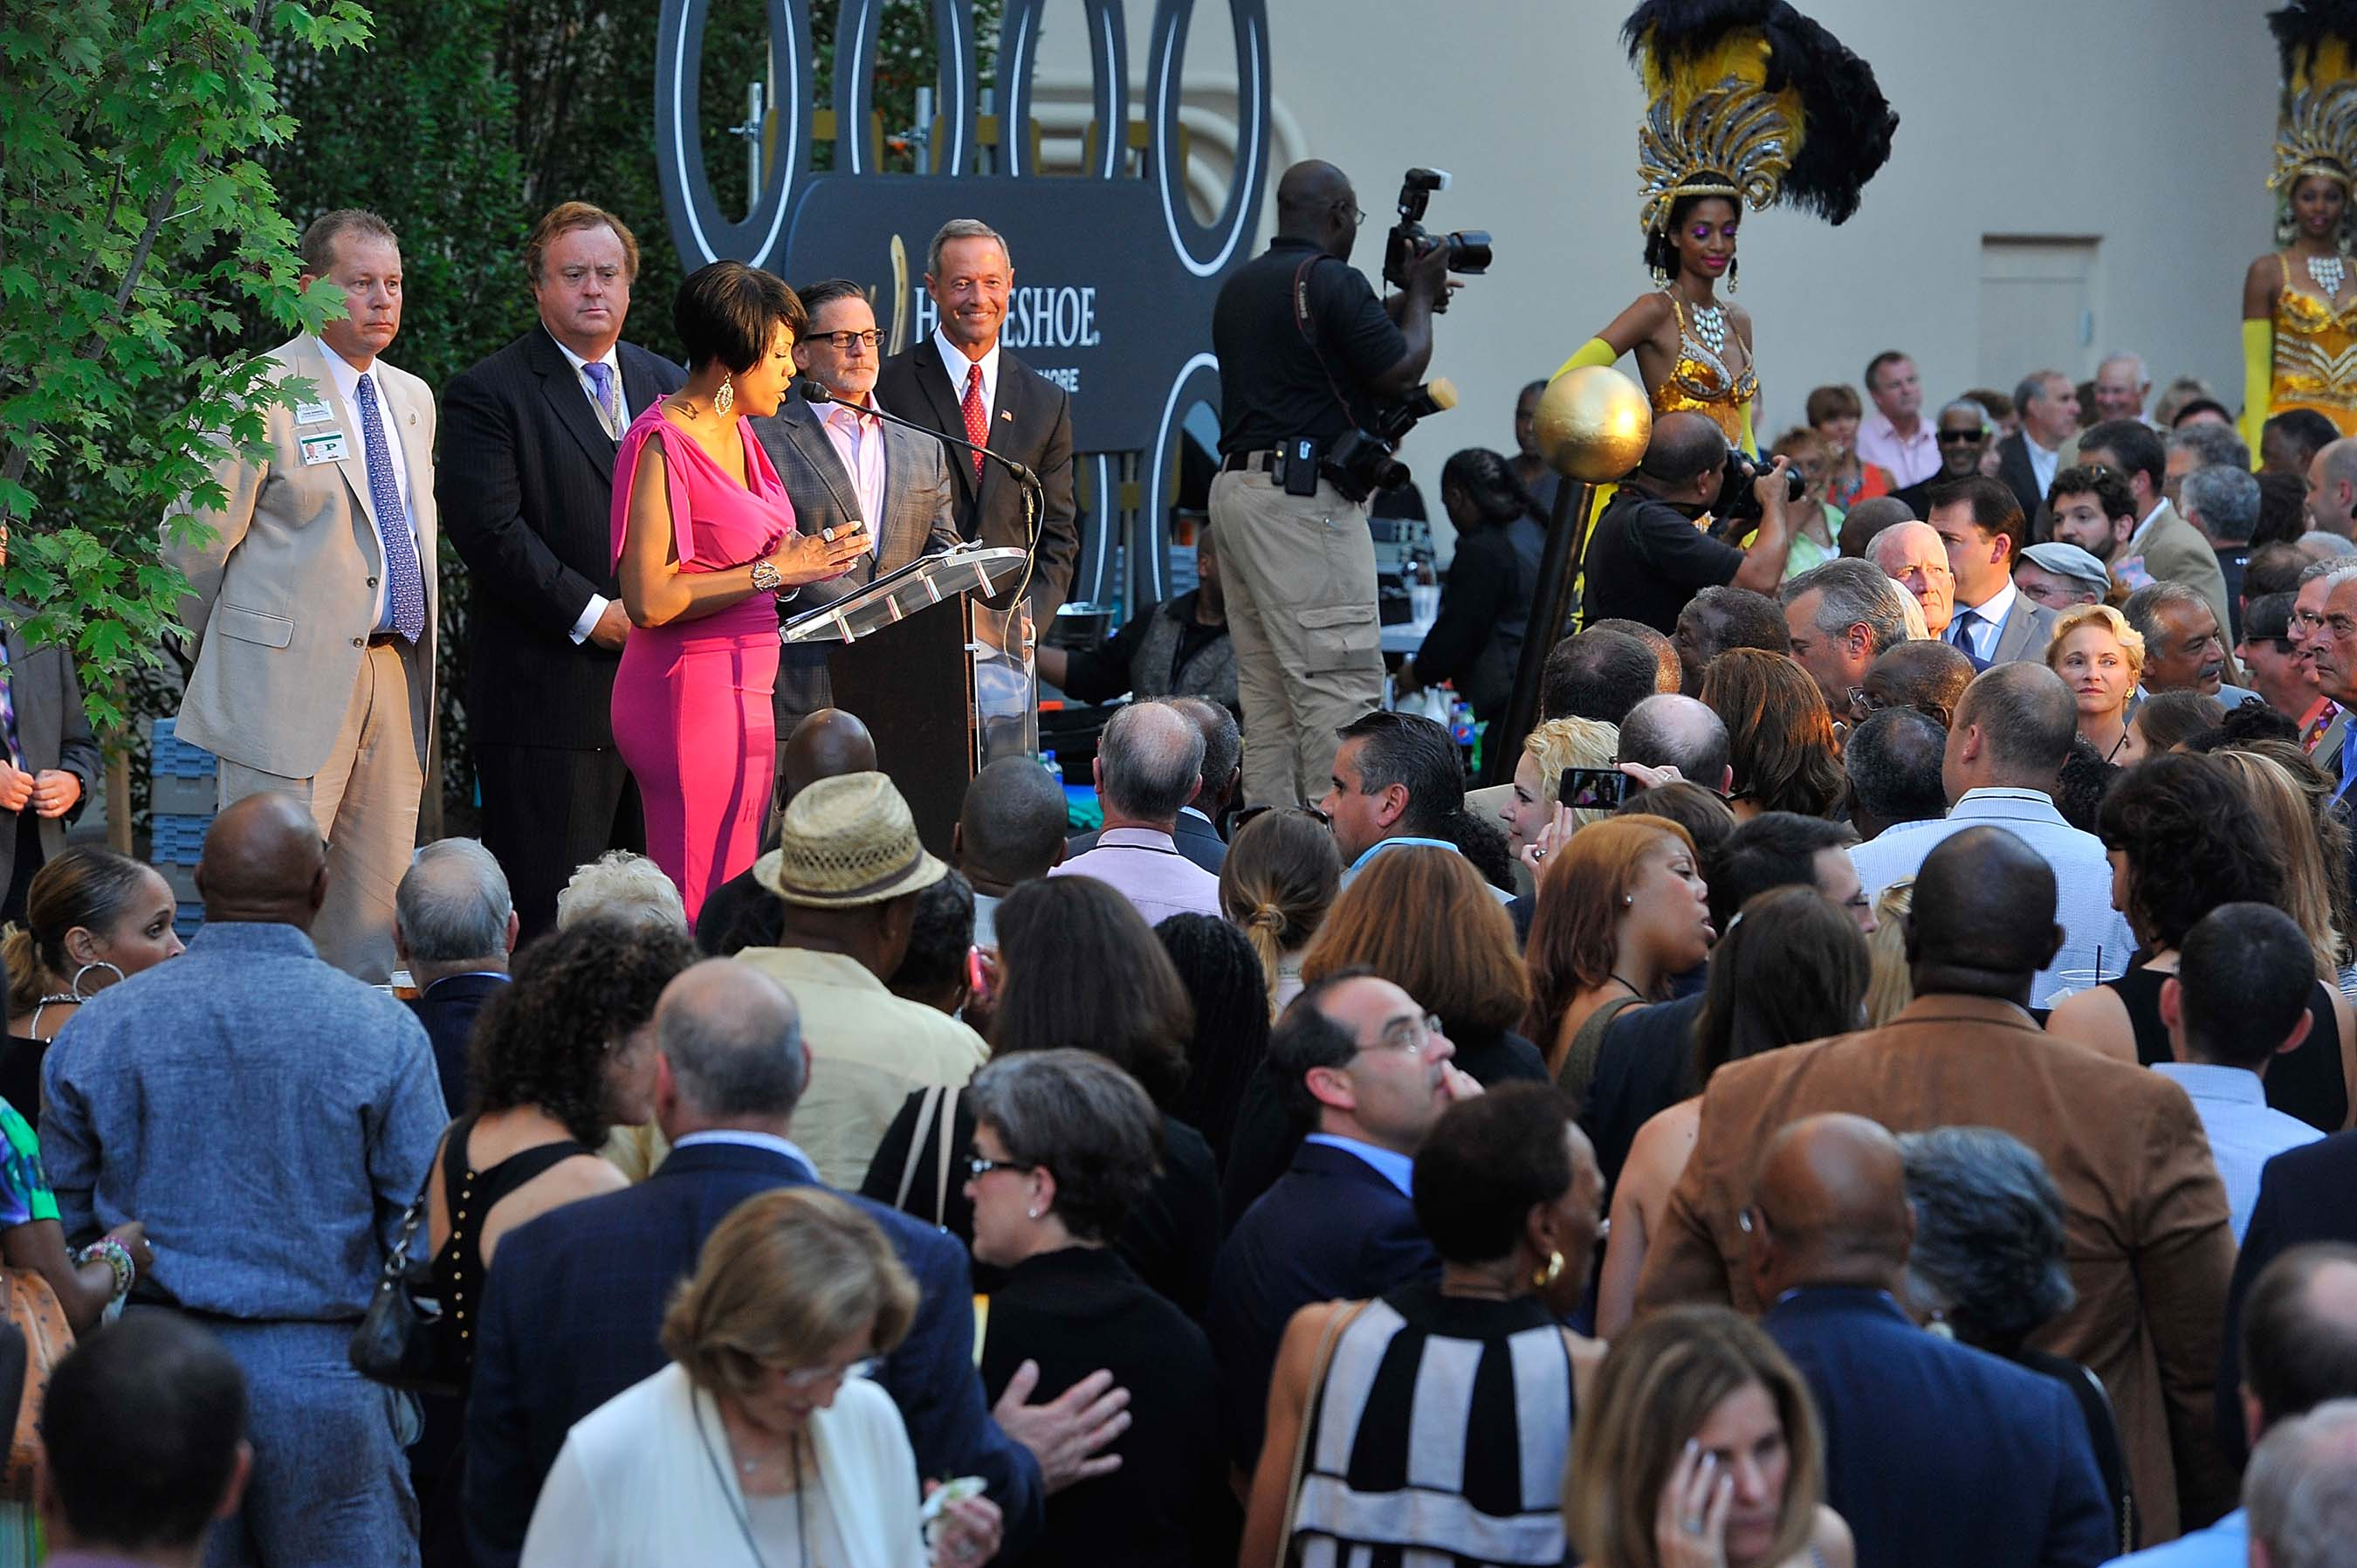 Baltimore Mayor Stephanie Rawlings-Blake address guests while Chad Barnhill, Gary Loveman, Dan Gilbert and Governor Mark O'Malley (D-MD) look on at grand opening of Horseshoe Casino Baltimore on August 26, 2014. PHOTO CREDIT: Larry French